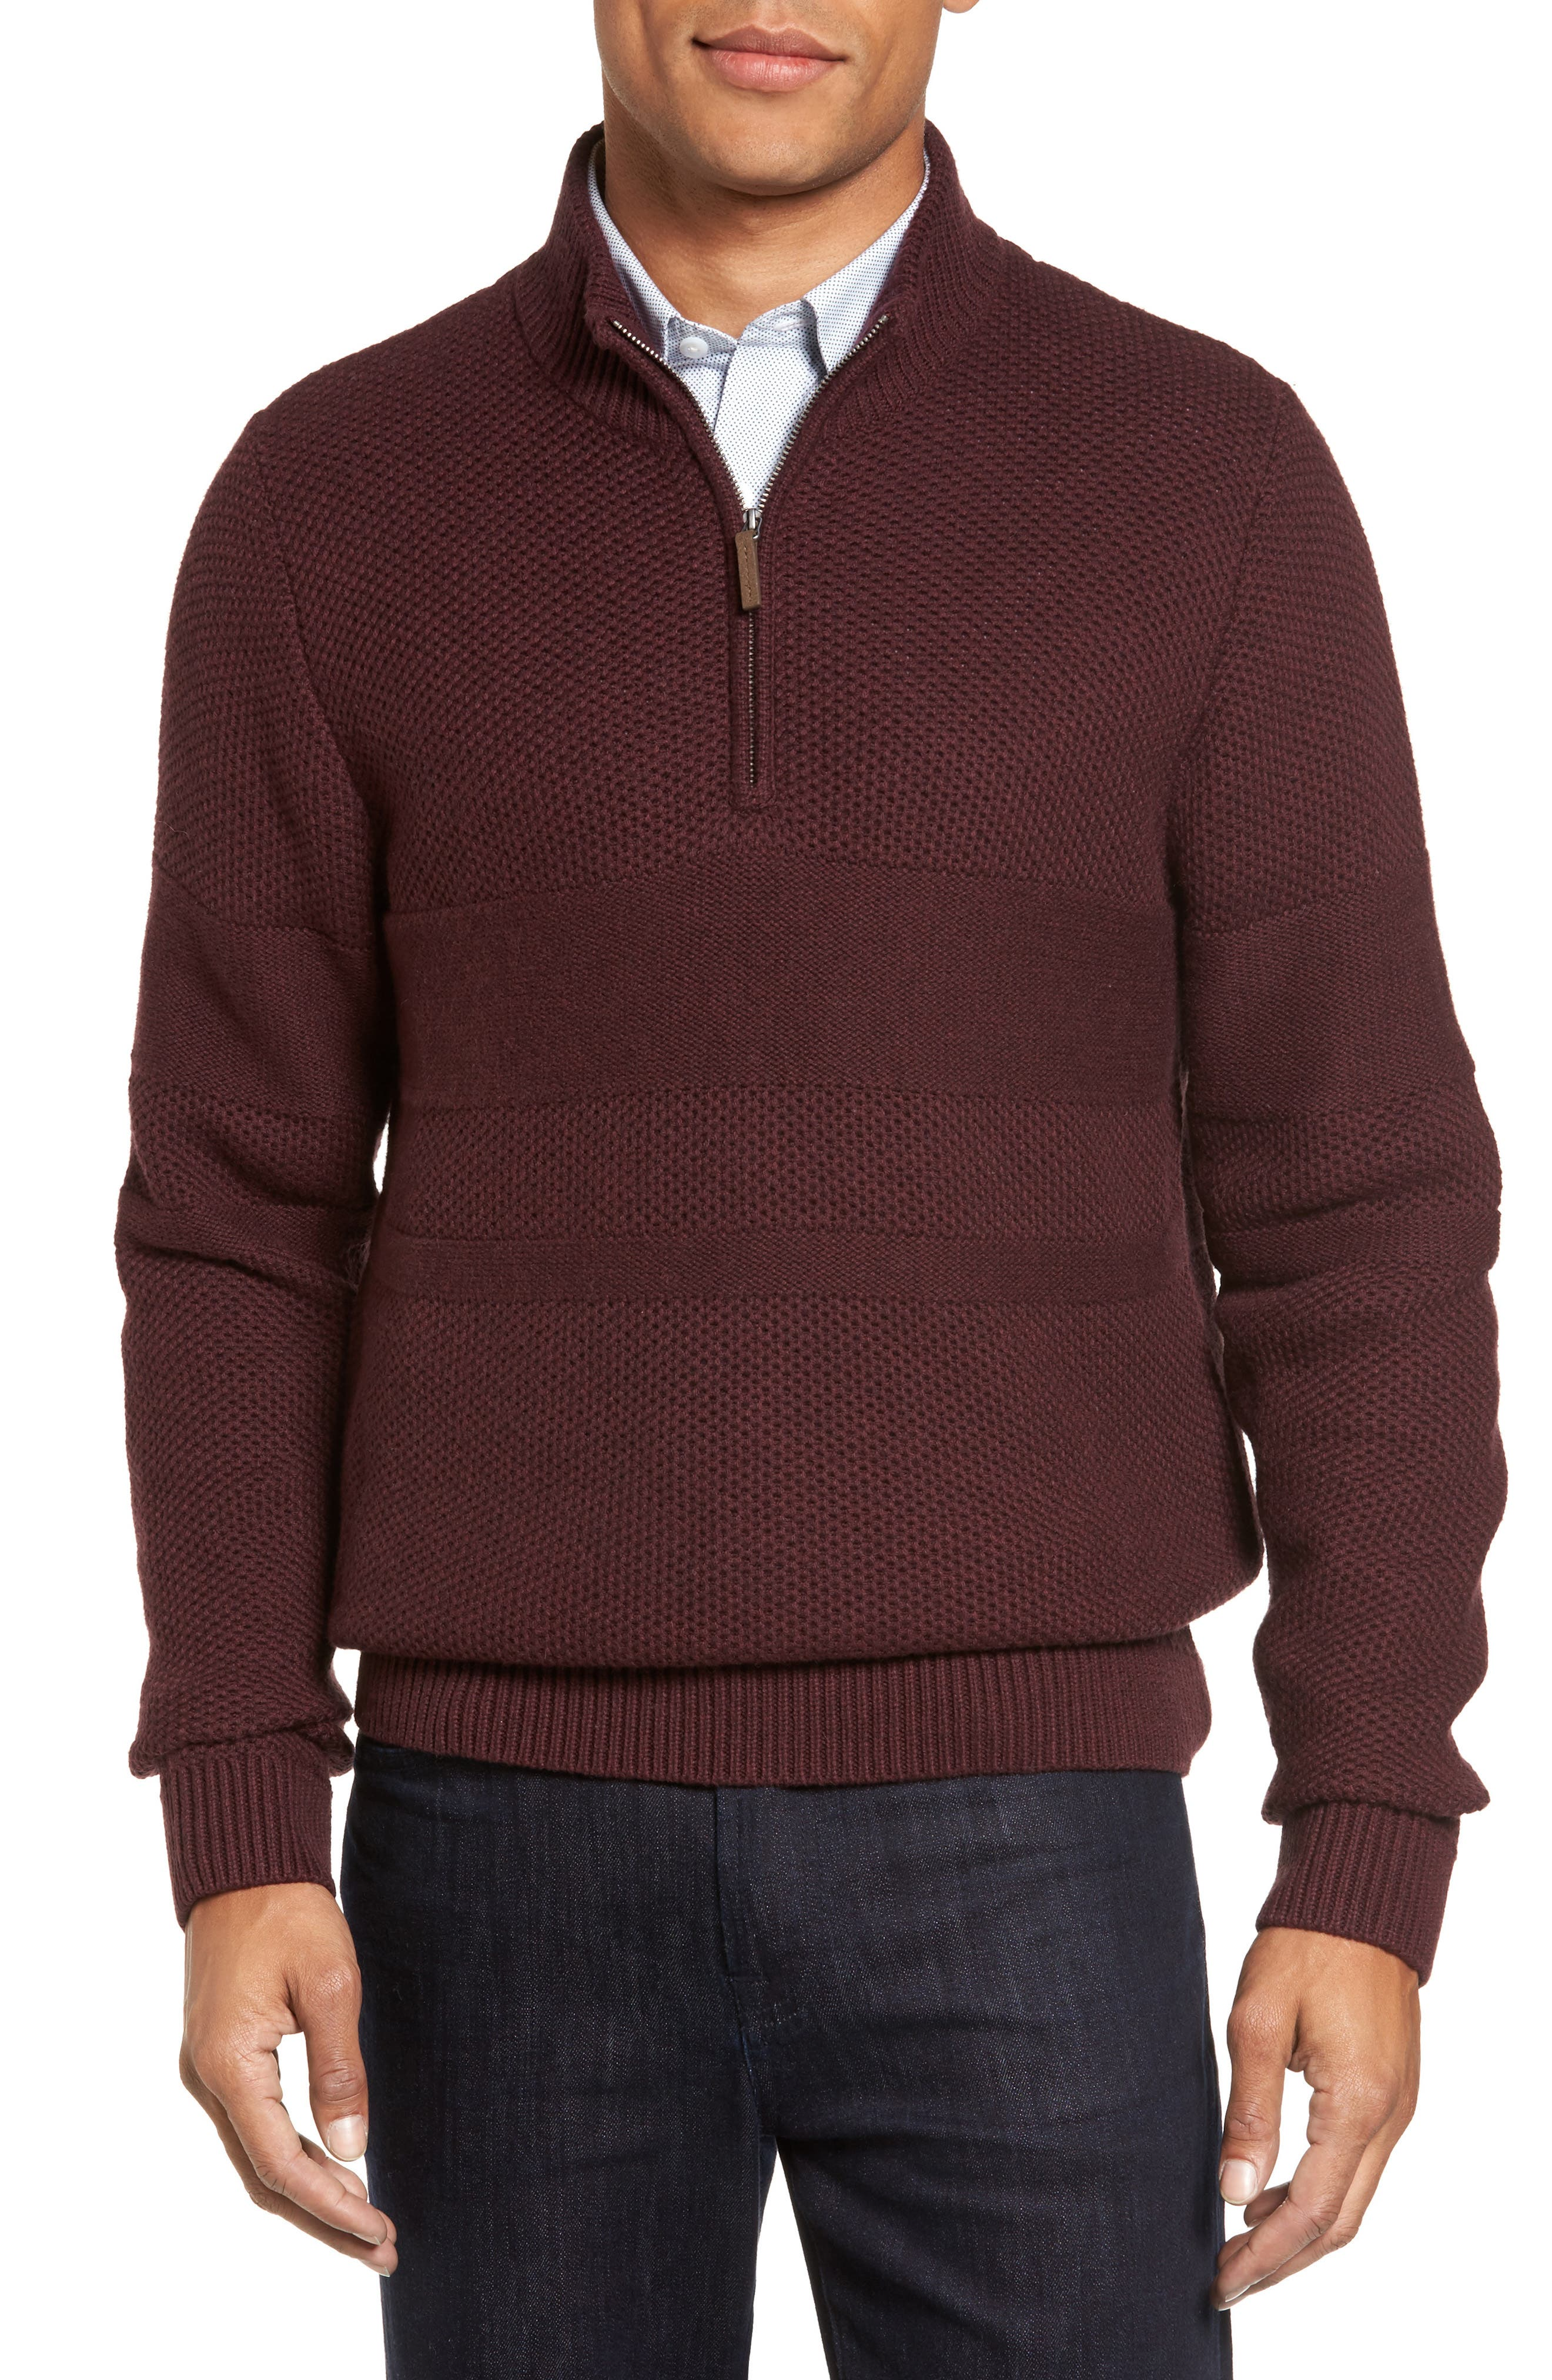 Nordstrom Mens Cashmere Sweaters